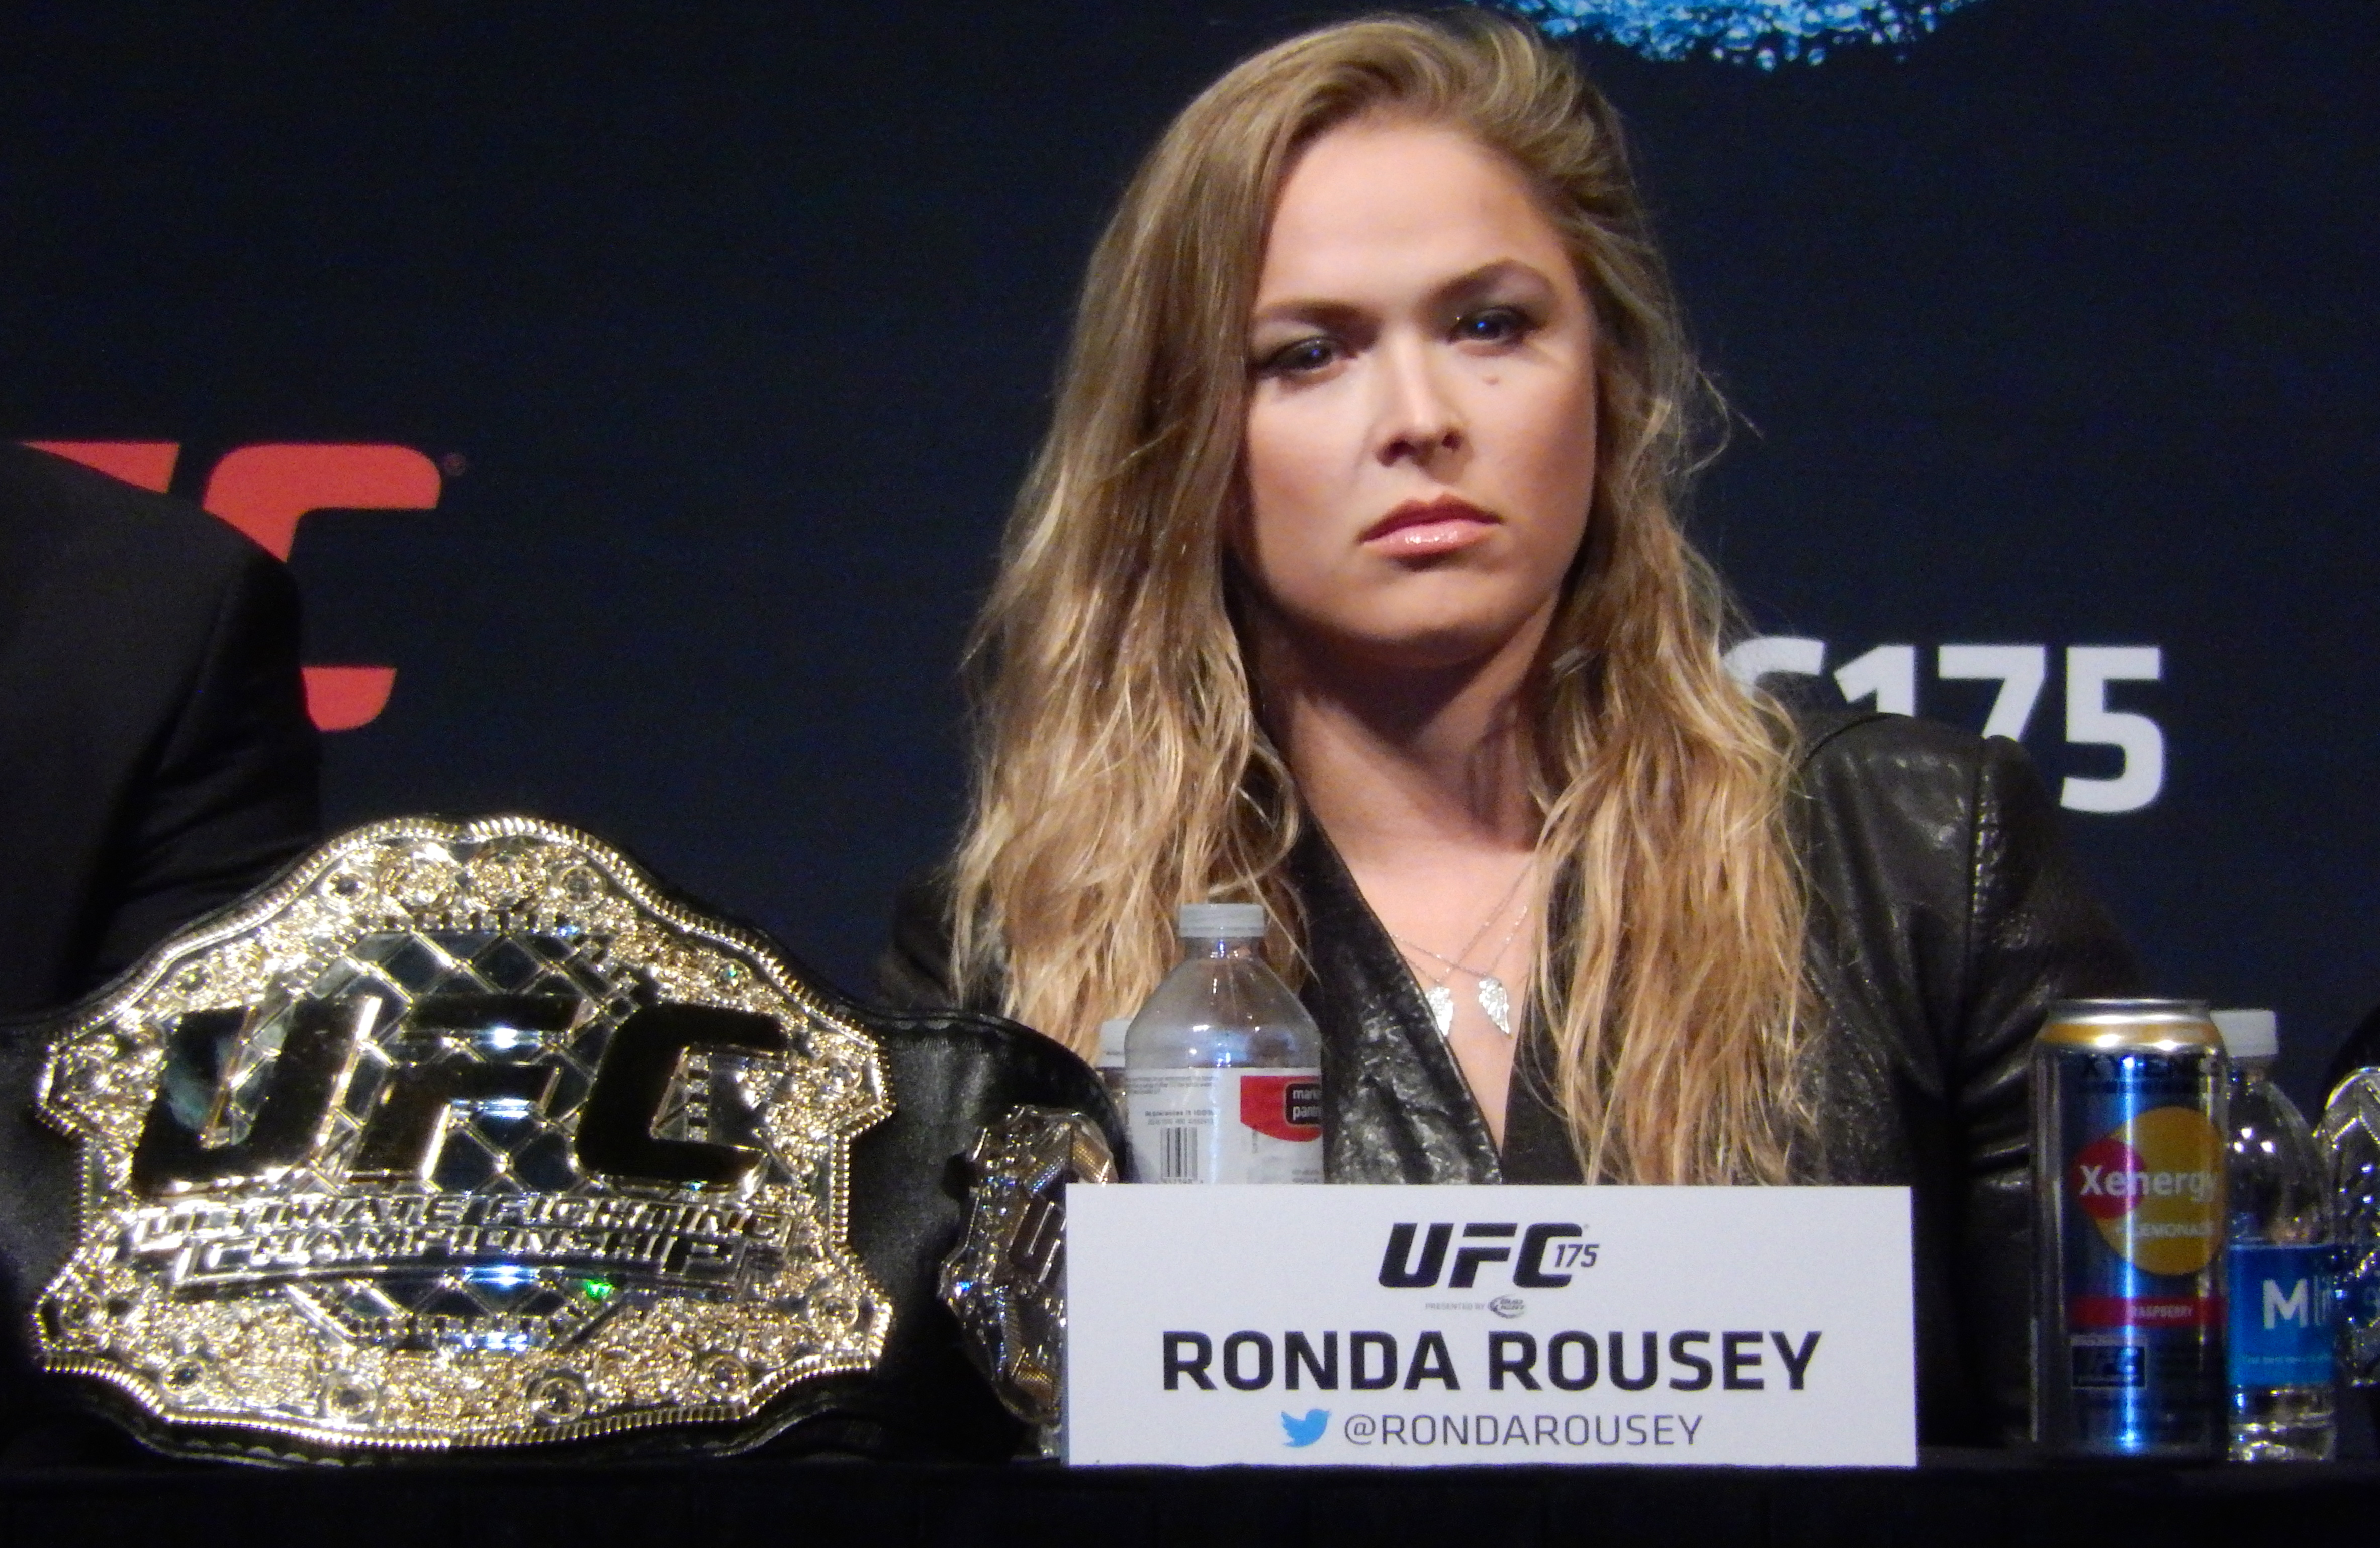 Sports ronda rousey wallpaper